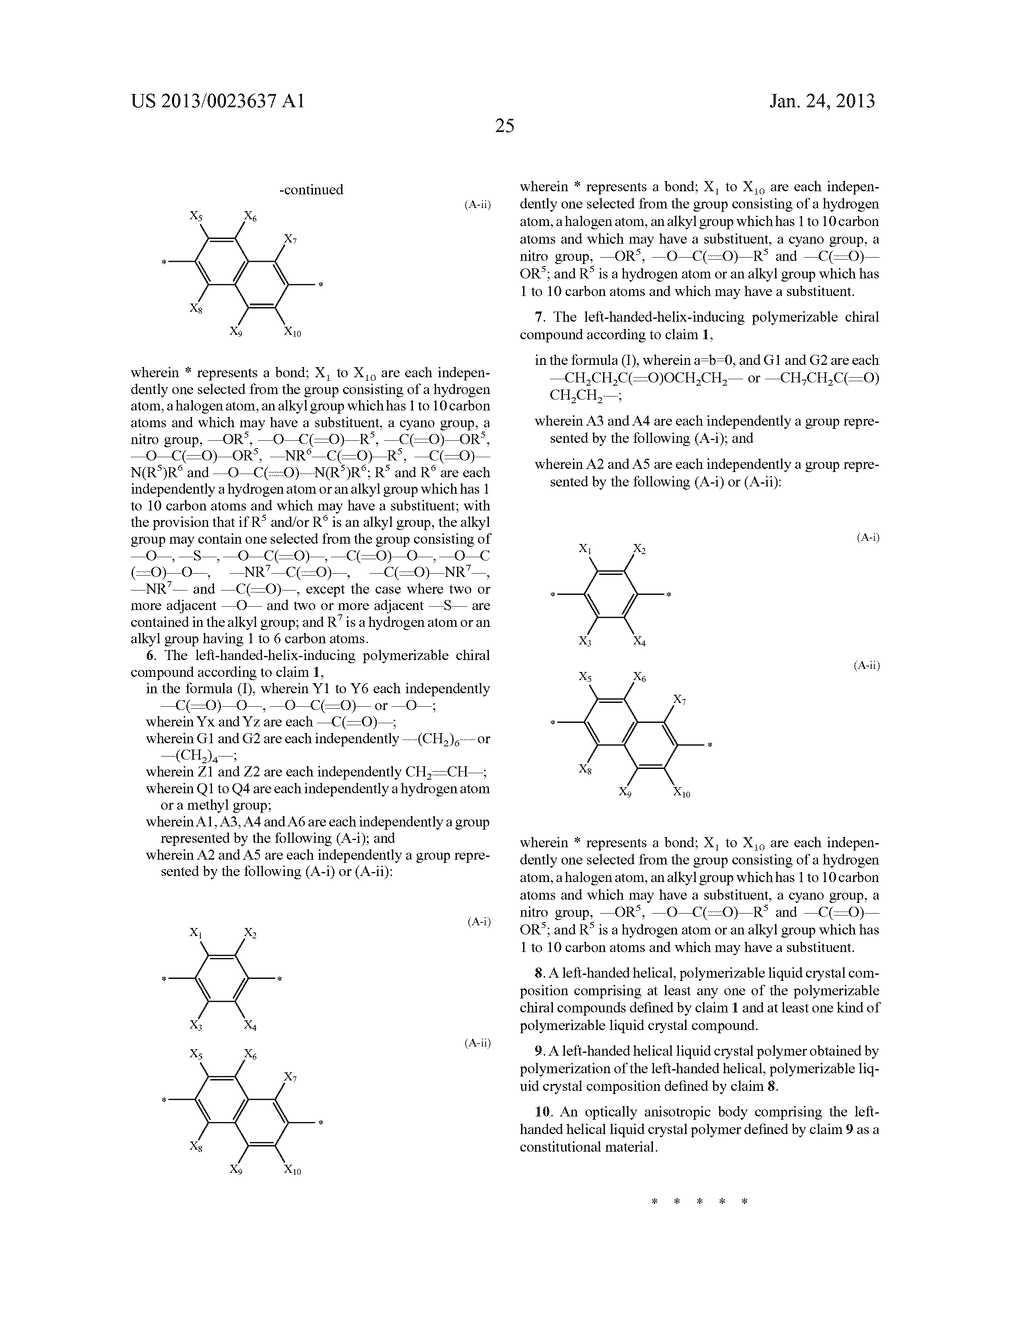 POLYMERIZABLE CHIRAL COMPOUND, POLYMERIZABLE LIQUID CRYSTAL COMPOUND,     LIQUID CRYSTAL POLYMER AND OPTICALLY ANISOTROPIC BODY - diagram, schematic, and image 26